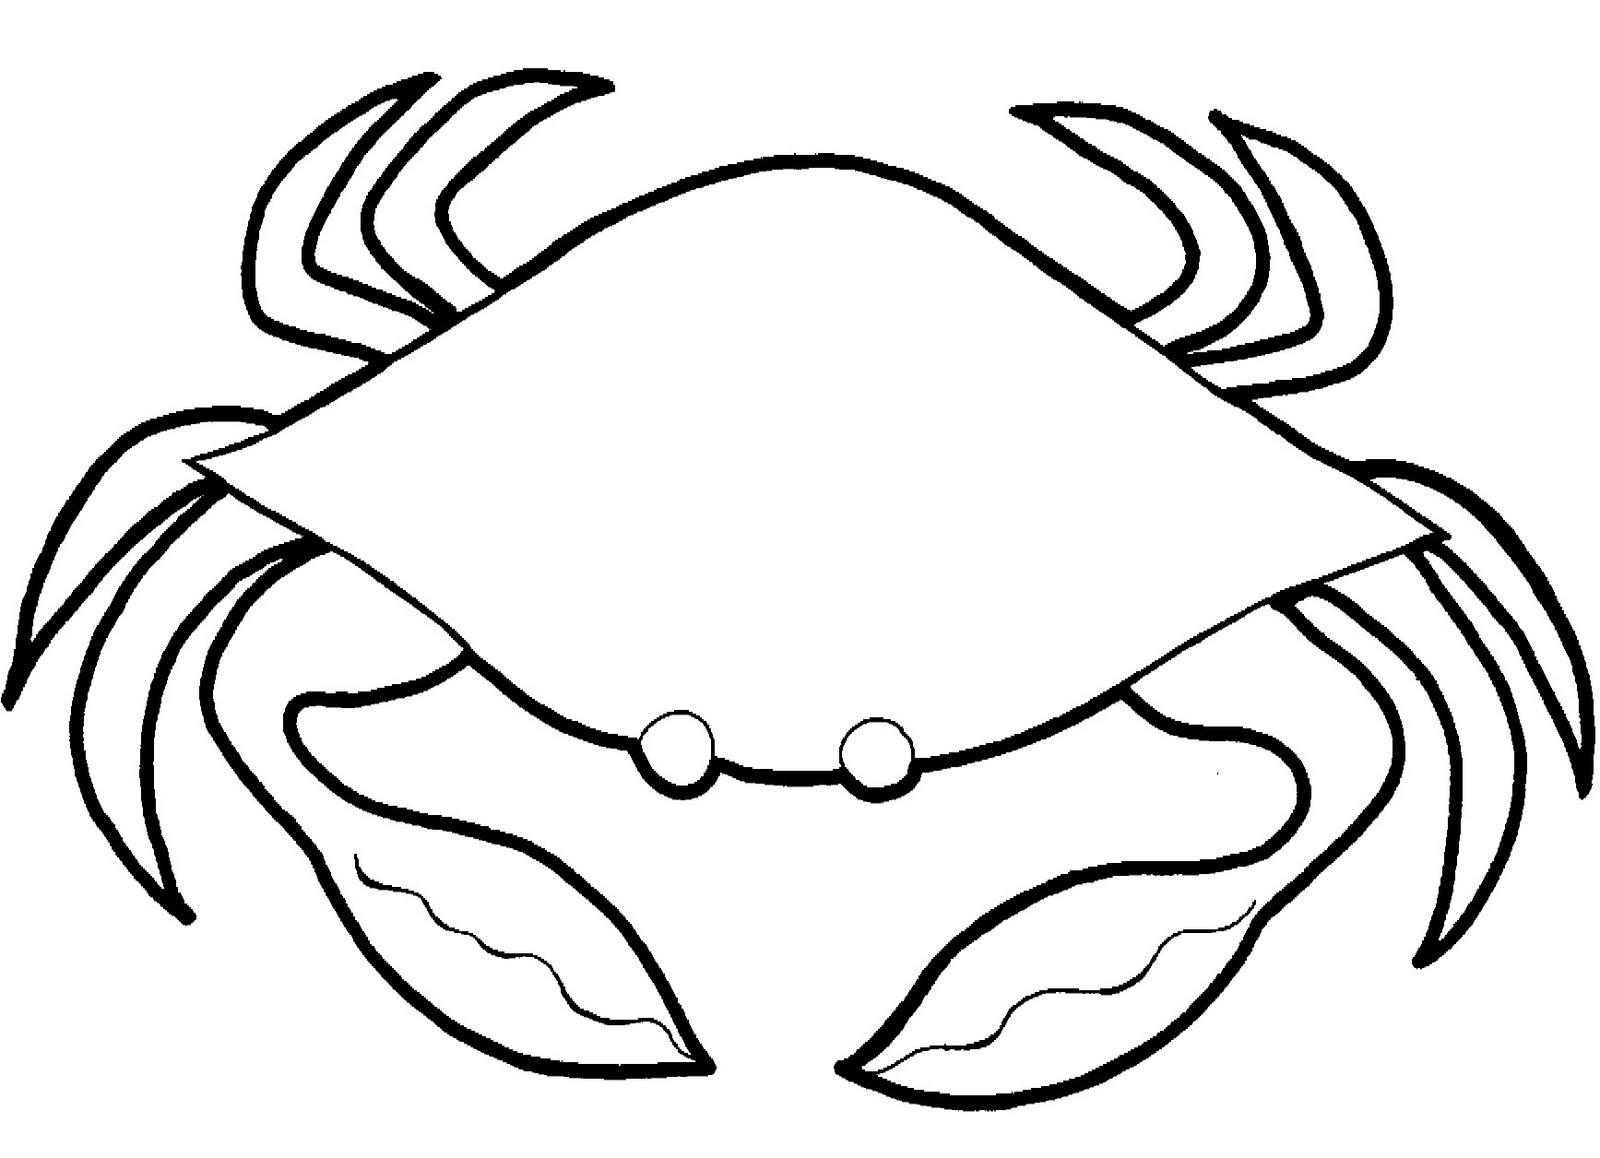 17 Marine Animals quot Crab quot Coloring